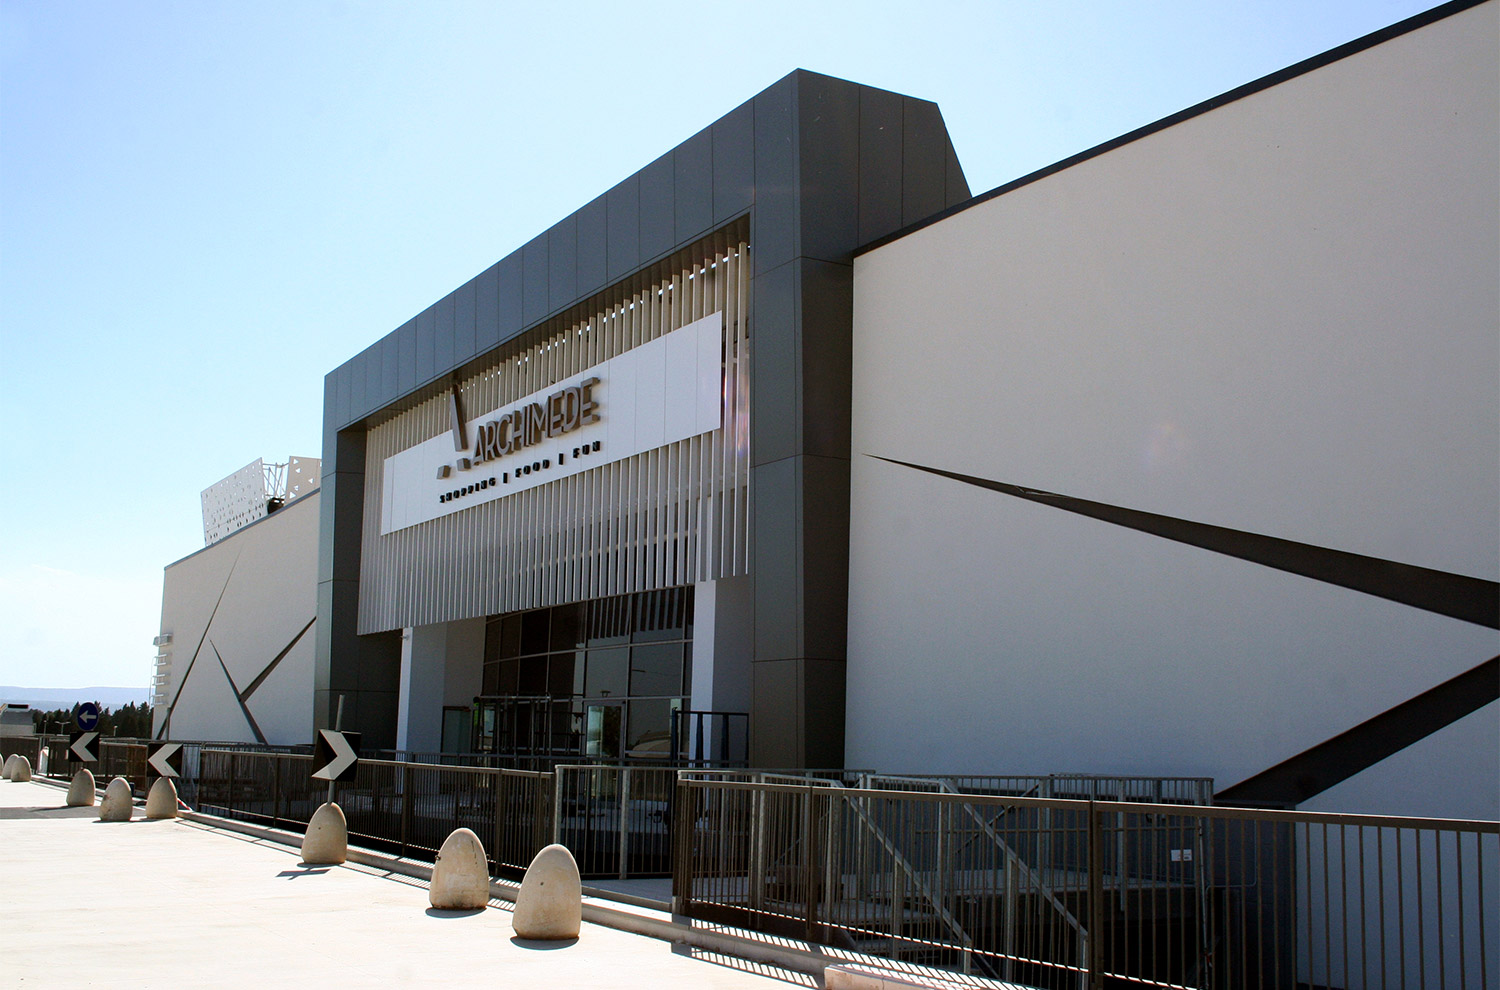 Centro Commerciale Archimede - Siracusa - Tecnomont Service - General contractor